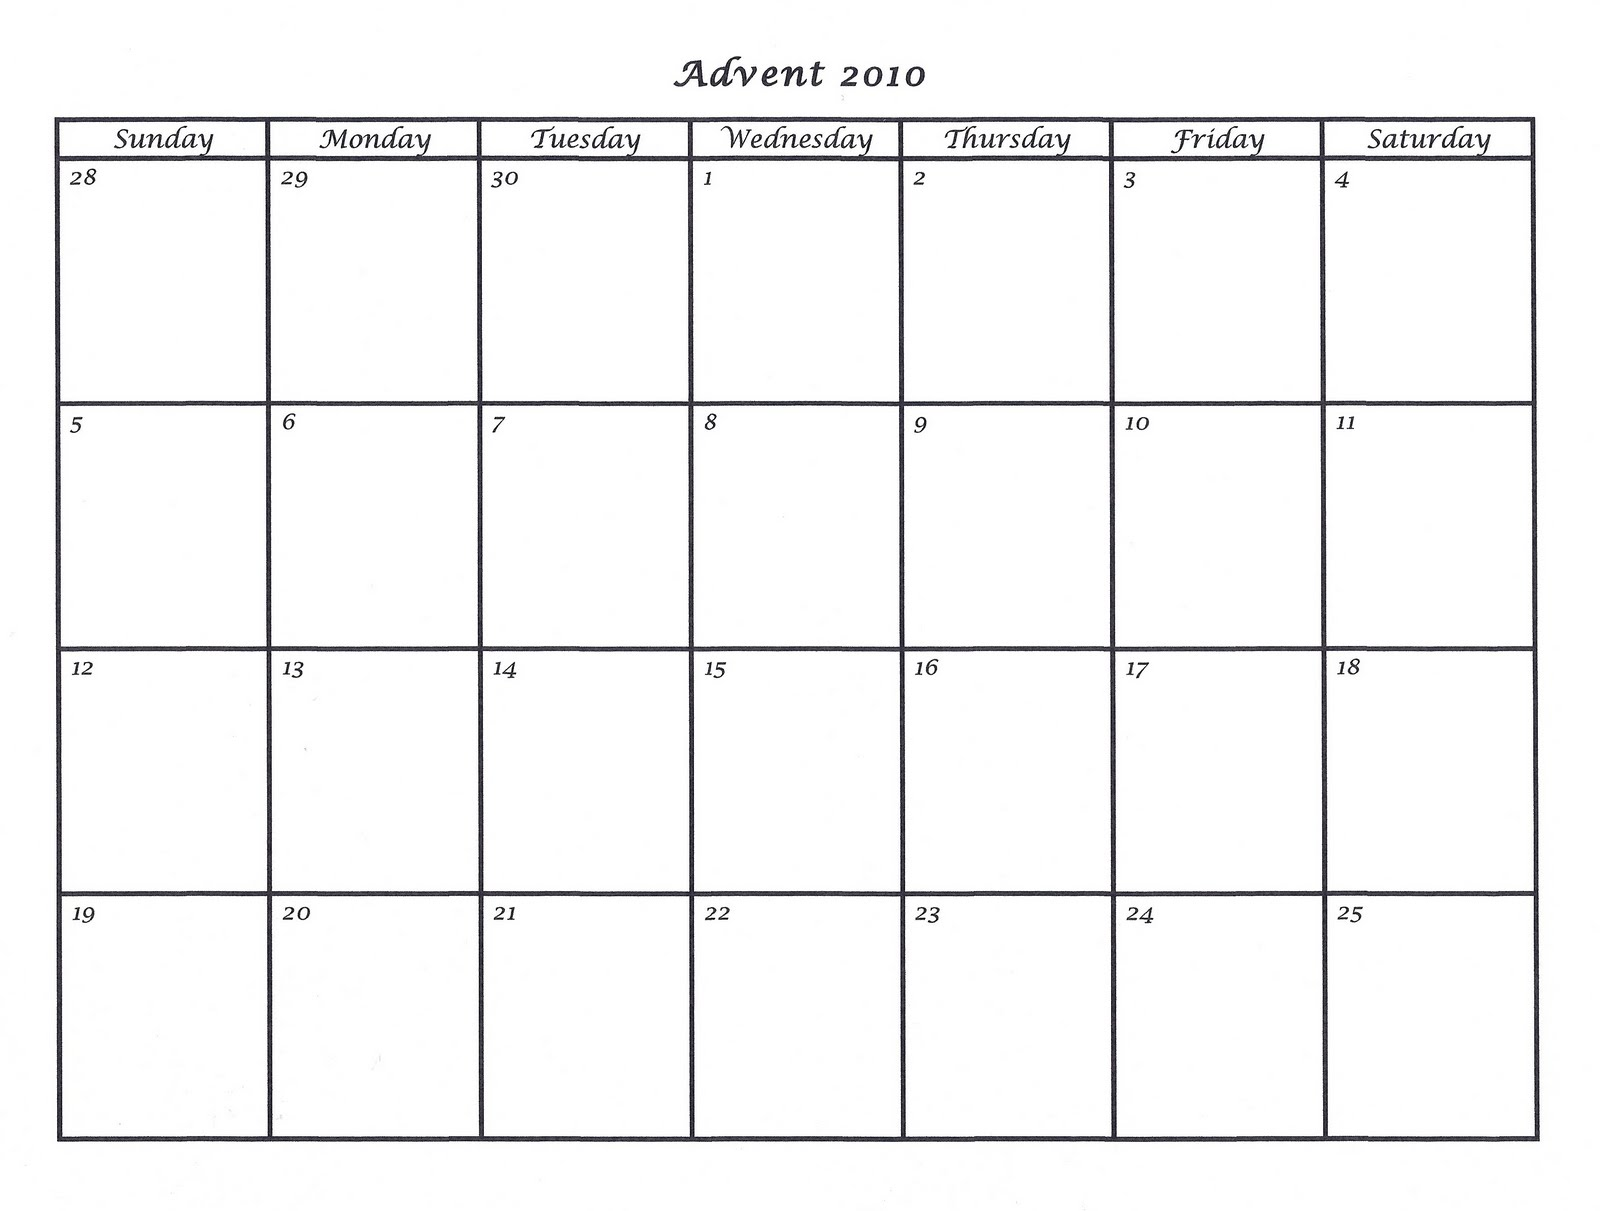 Mostly markers 2010 advent calendar template 2010 advent calendar template saigontimesfo